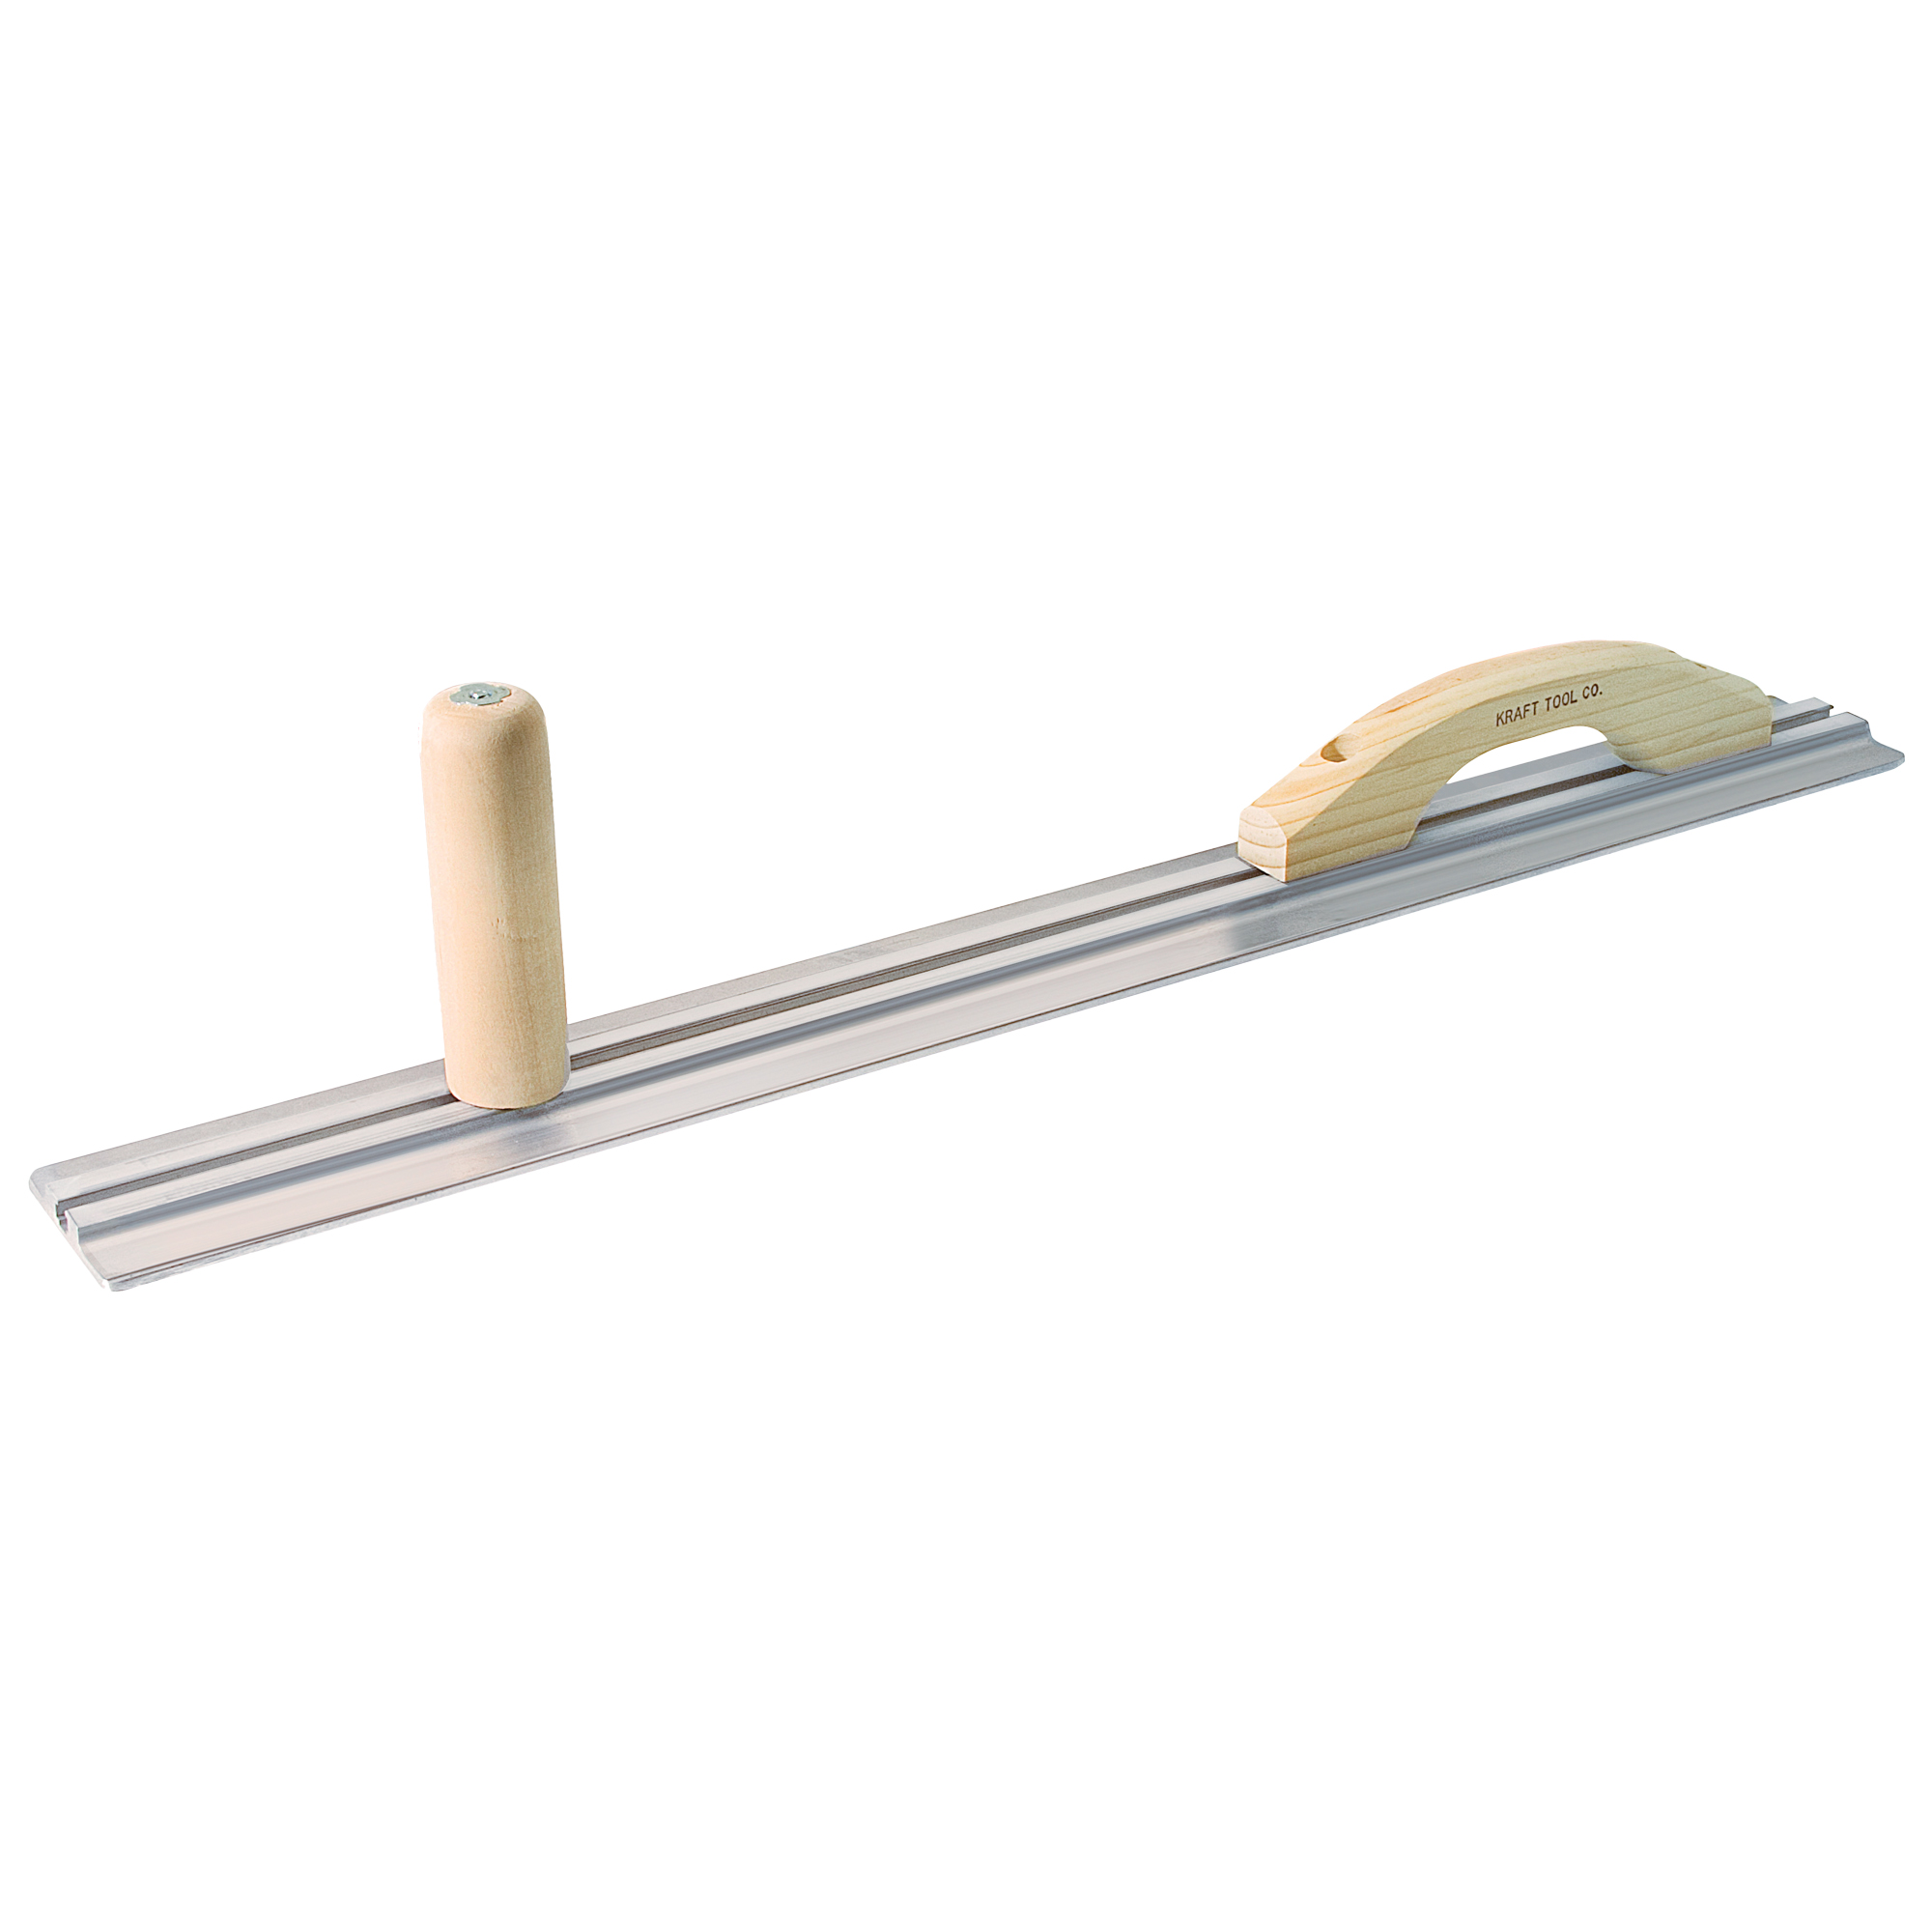 36inch X3-1/4inch Magnesium Darby With 1 Knob & 1 Handle - Cf033 - Tools Straight Edges Concrete CF033